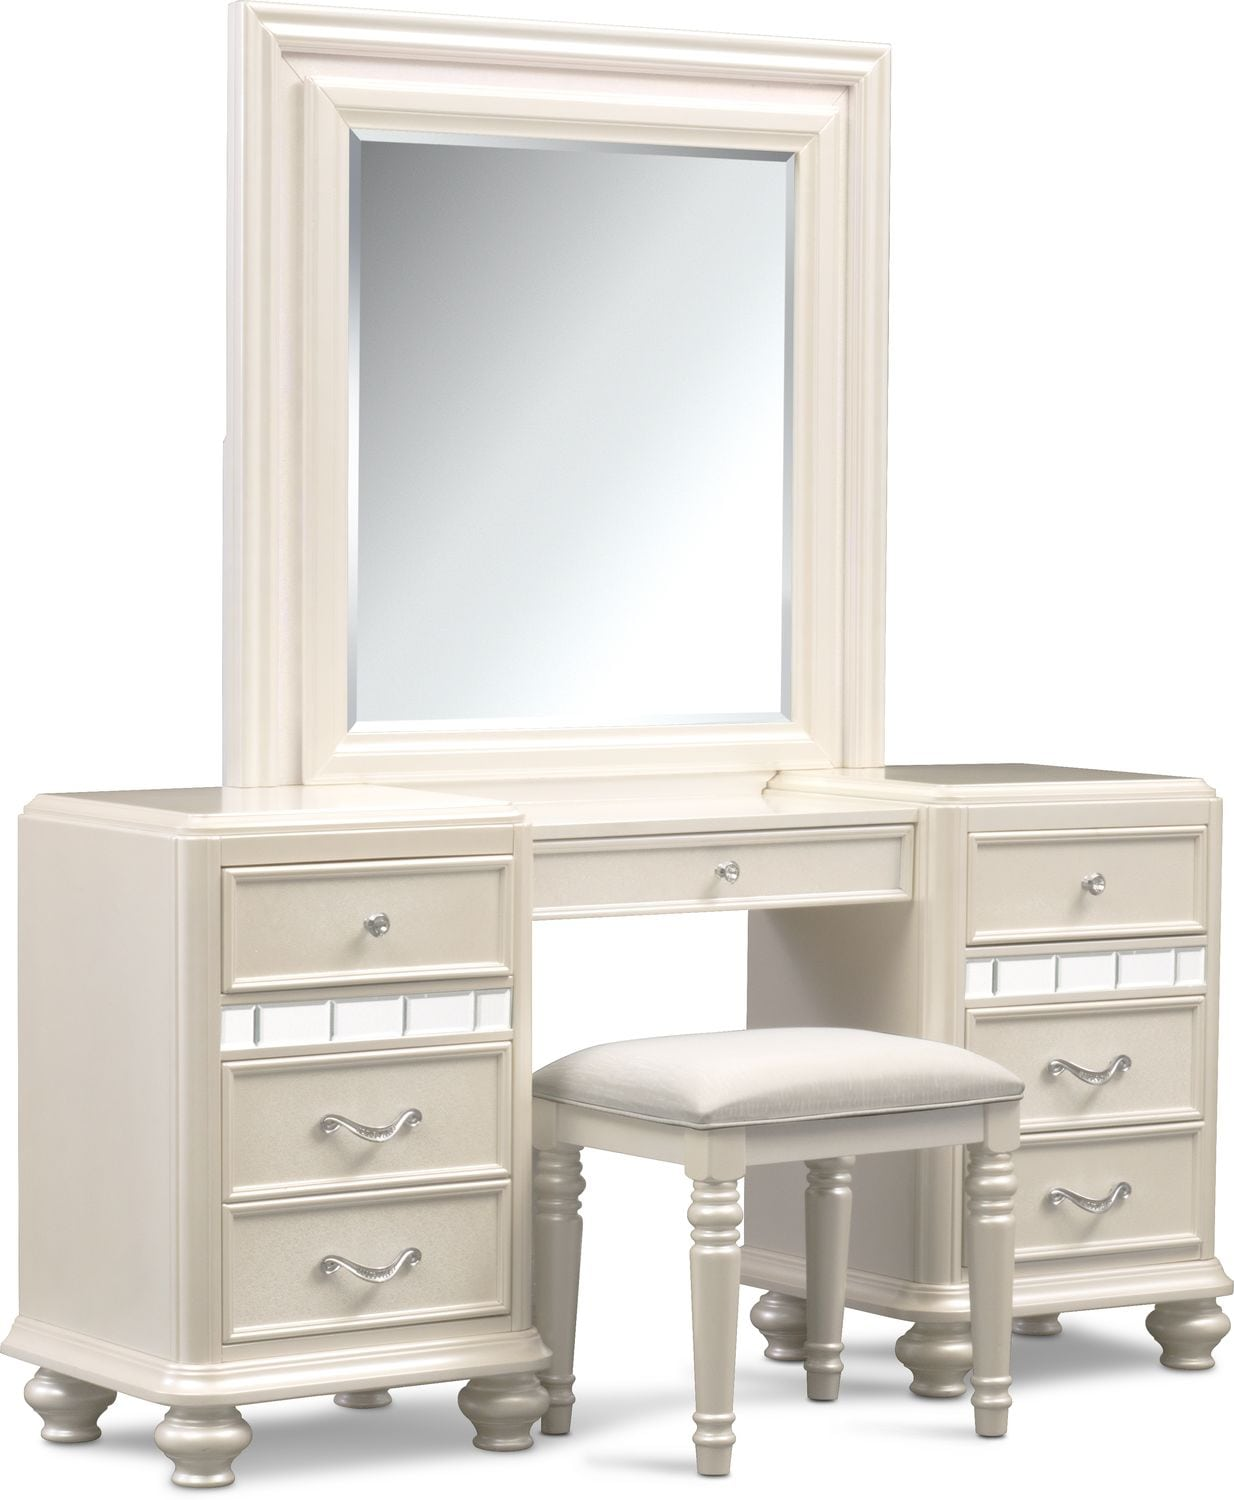 Bedroom Furniture - Sabrina Vanity, Mirror and Bench